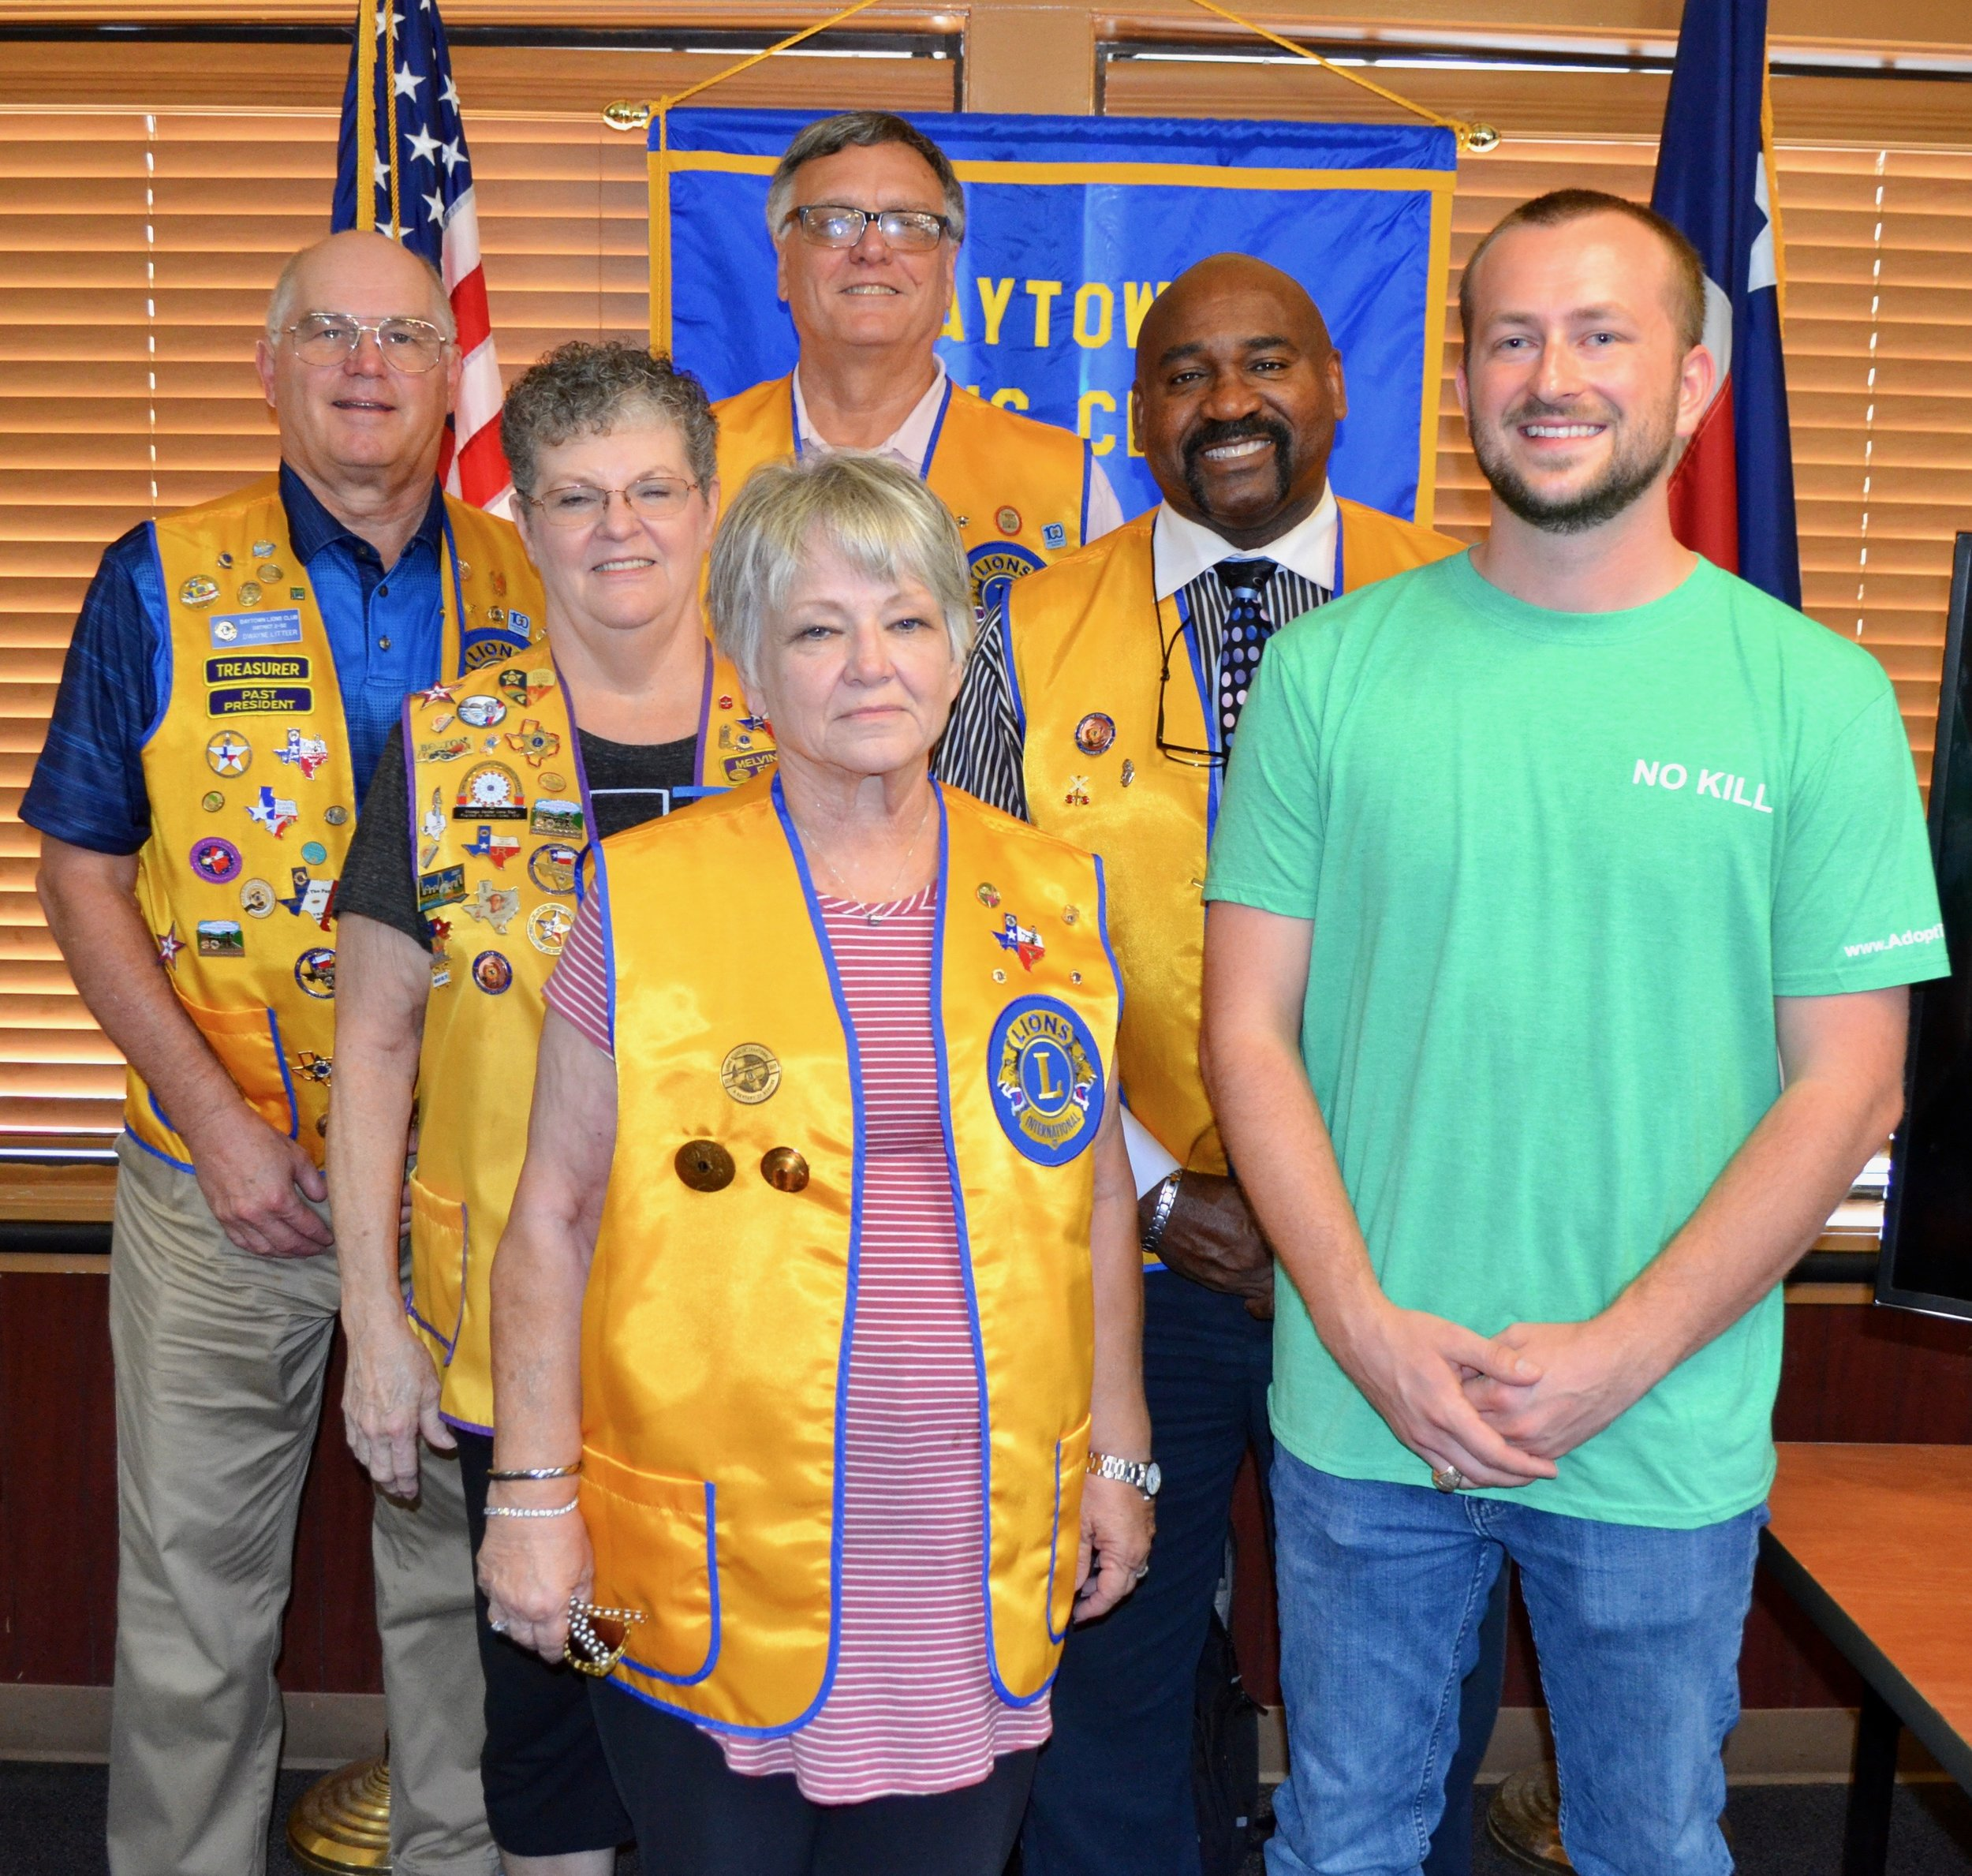 Jay Garrett was guest speaker at the Baytown Lions Club lunch meeting. Among those in attendance were (front row) club president Kathy Anderson and officers (middle row) Carol Leskovjan and Dr. Anthony Price, and (back row) Dwayne Litteer and Rev. Mark Davis.